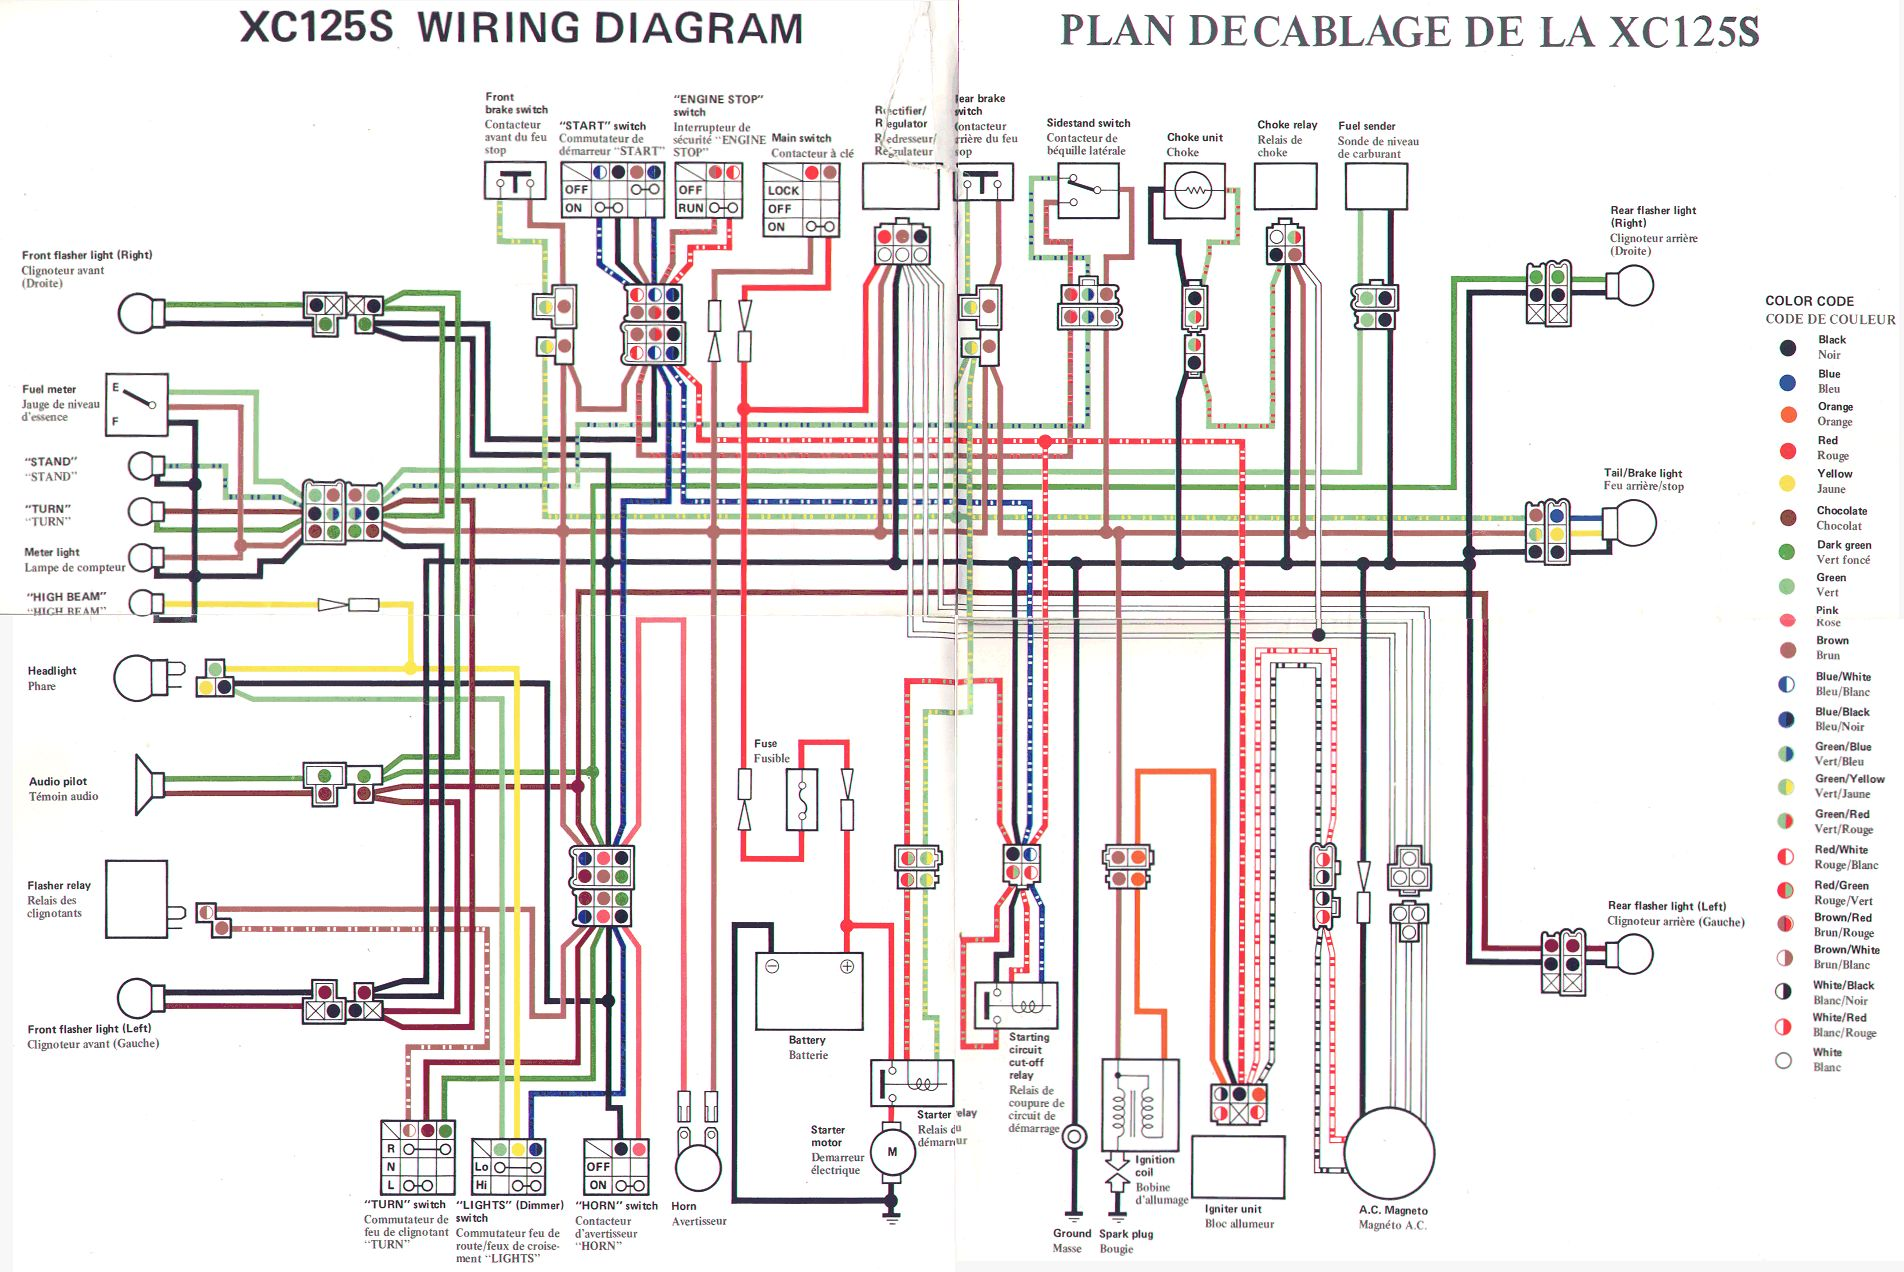 Wiring doagram for yamaha xtz125 wiring diagram and schematics yamaha aerox wiring diagram yamaha free wiring diagrams yamaha aerox wiring diagram cheapraybanclubmaster Images